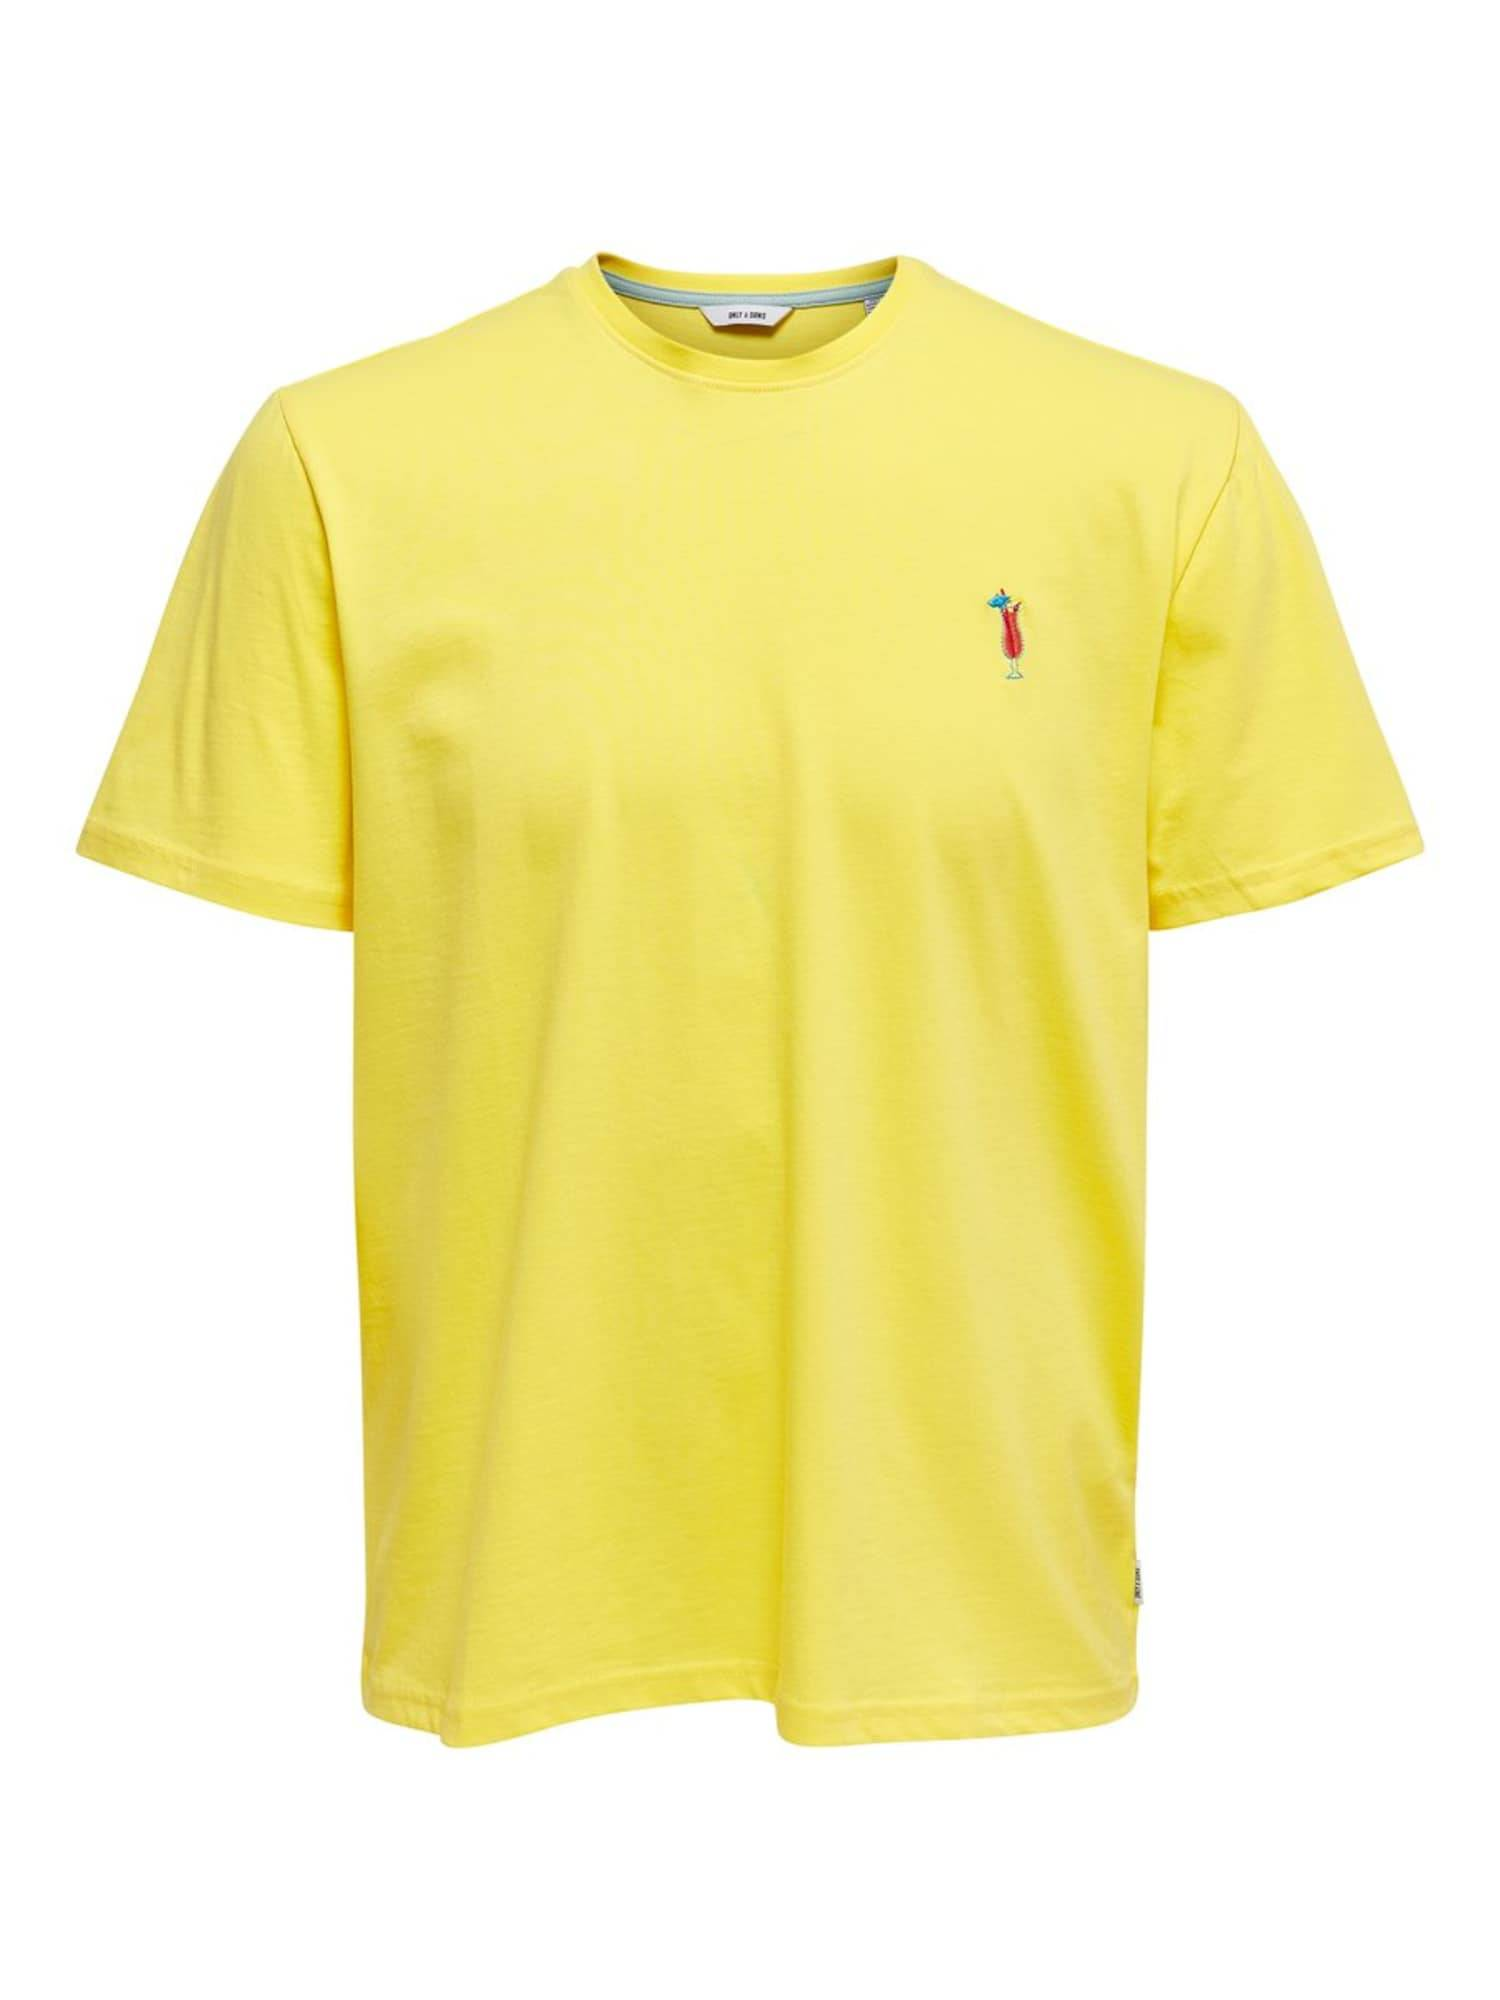 Only & Sons T-Shirt  - Jaune - Taille: XL - male